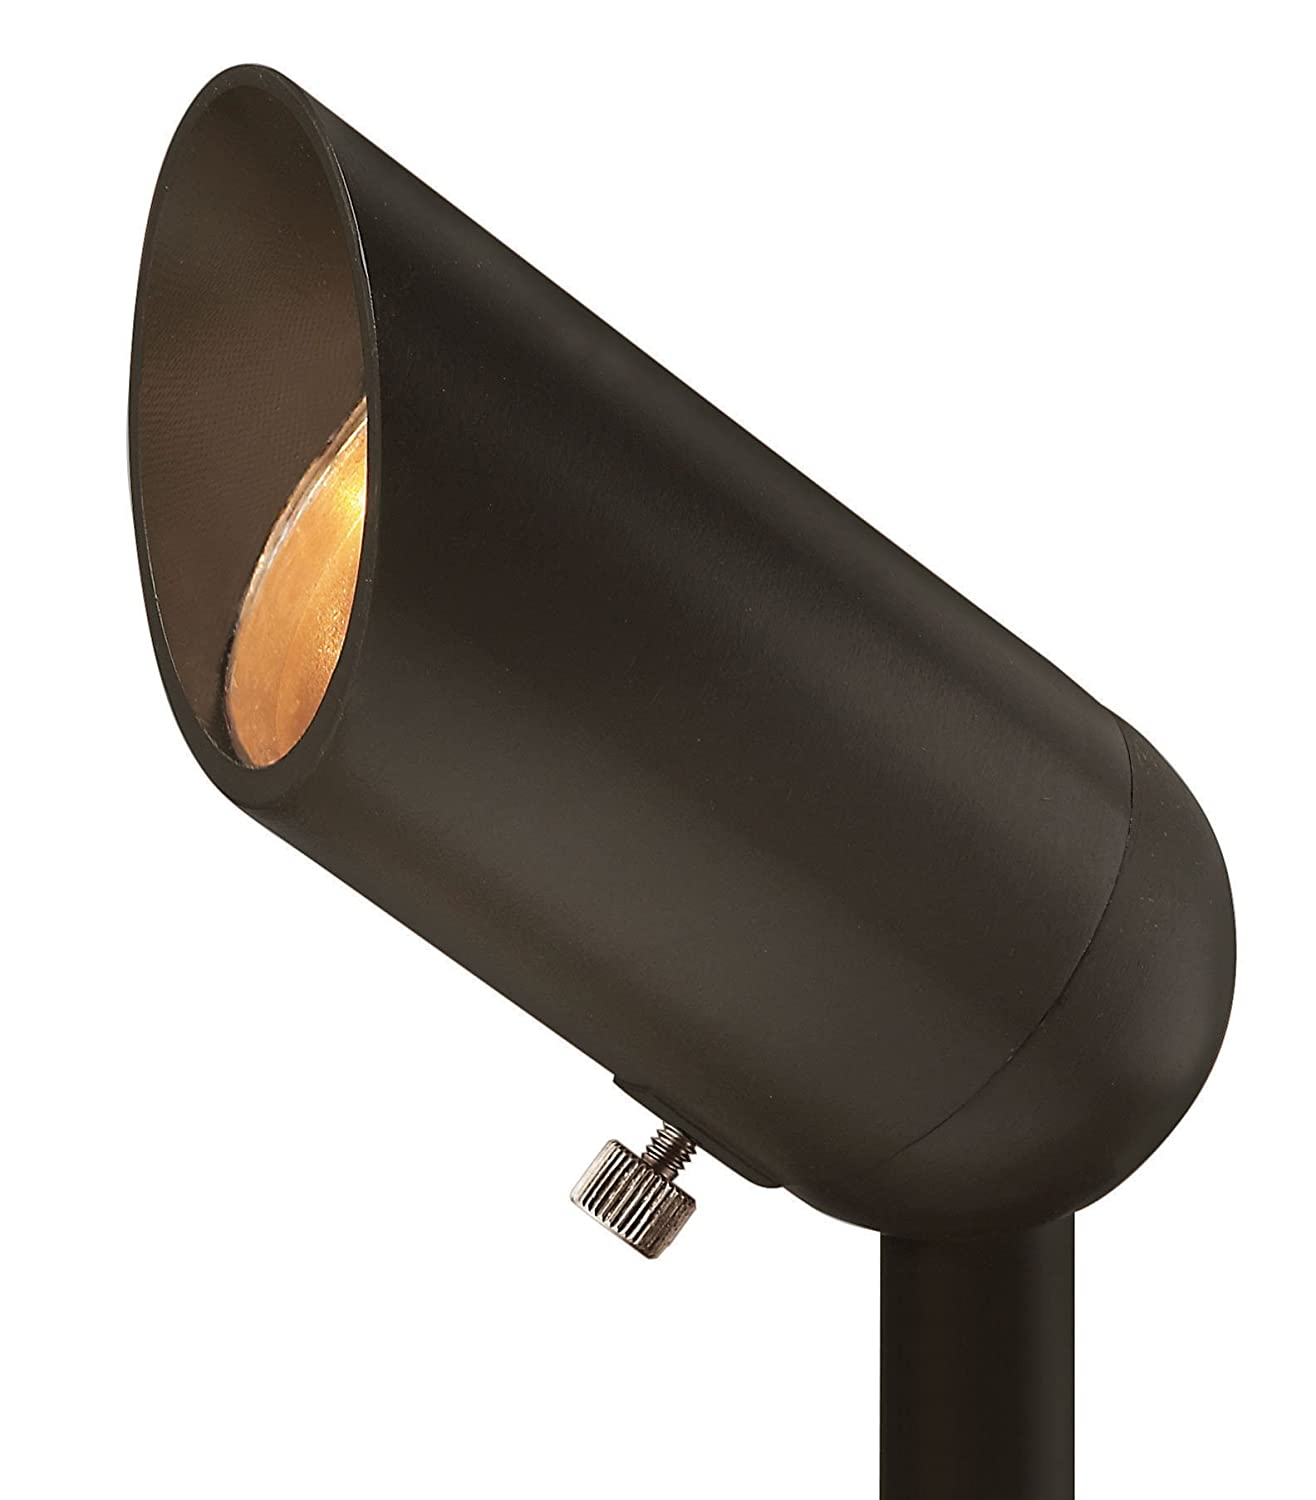 Amazon.com Hinkley Landscape Lighting Bronze Cast Spot Light u2013 Spotlight Important Landscape Features and Increase Home Security 50 Watt Maximum Spot ...  sc 1 st  Amazon.com & Amazon.com: Hinkley Landscape Lighting Bronze Cast Spot Light ...